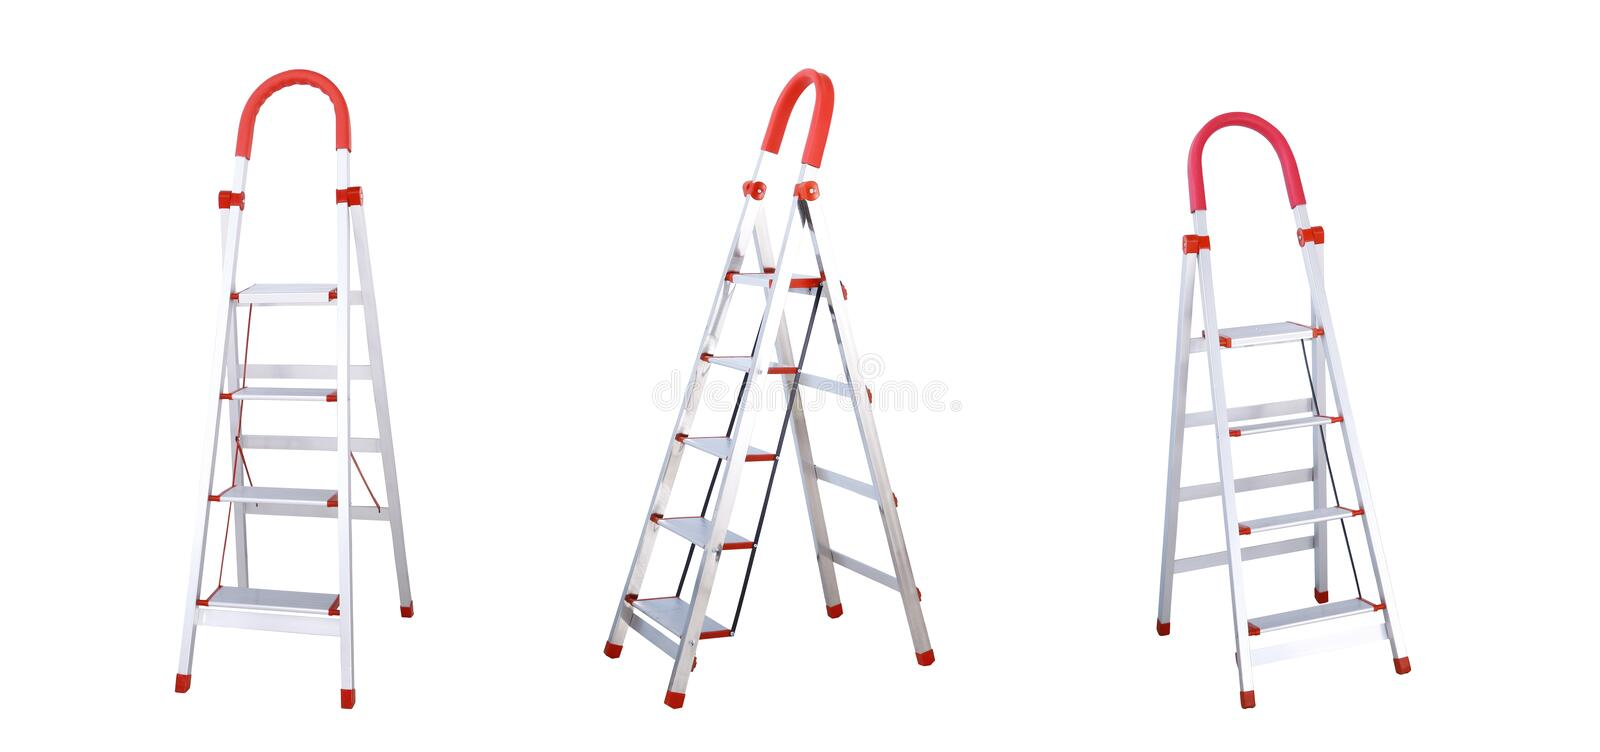 Aluminum folding ladders with hand bar isolated on white background. royalty free stock photos